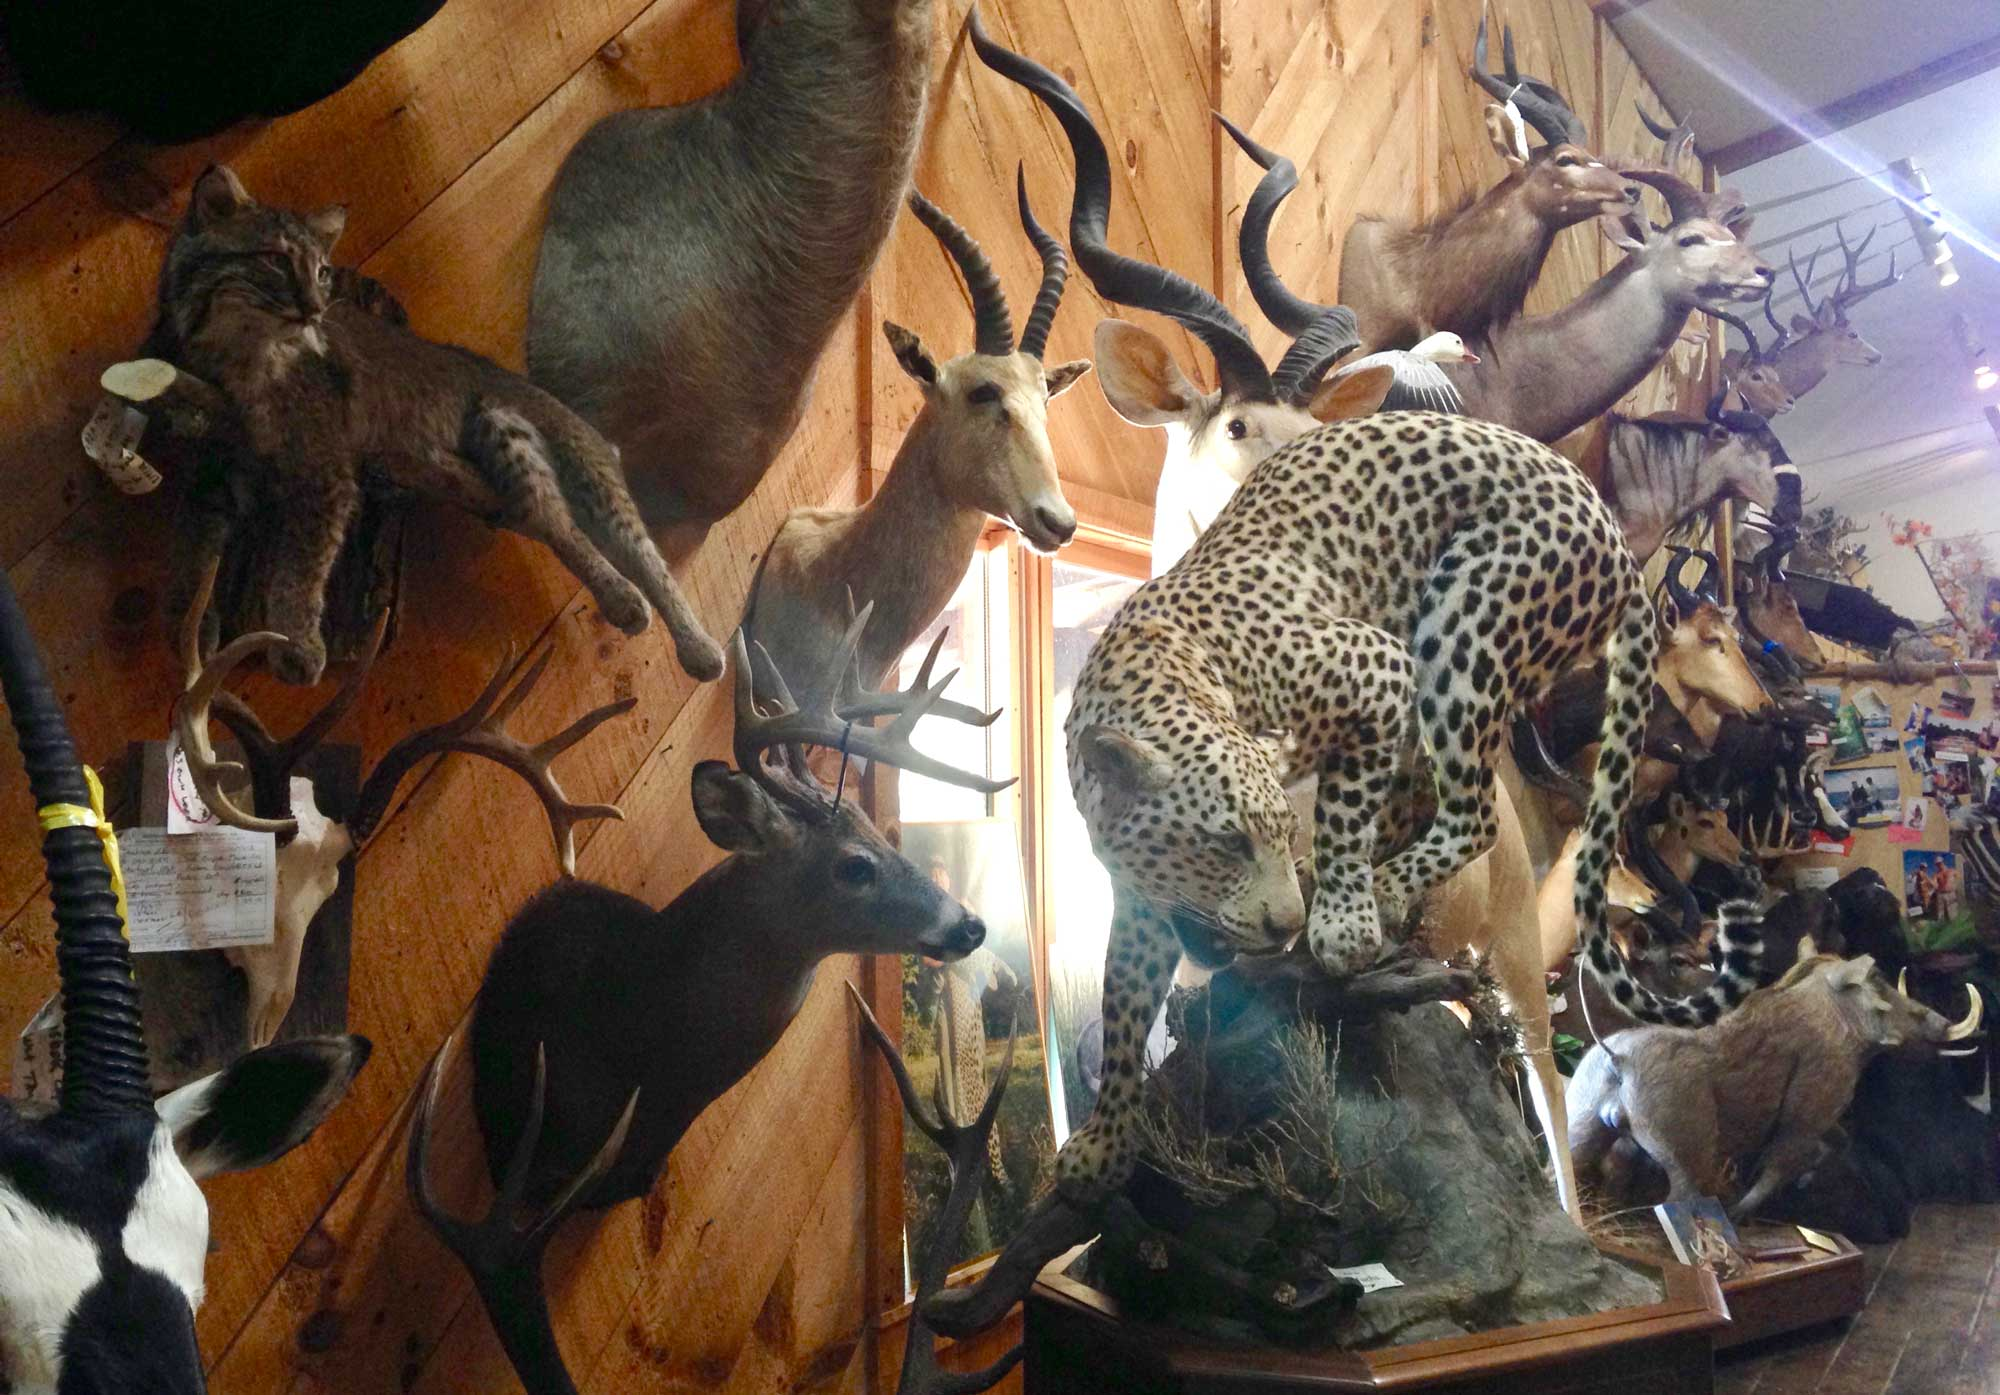 Mounted exotic wildlife specimens at Wilderness Taxidermy and Wildlife Museum in Franklin, North Carolina